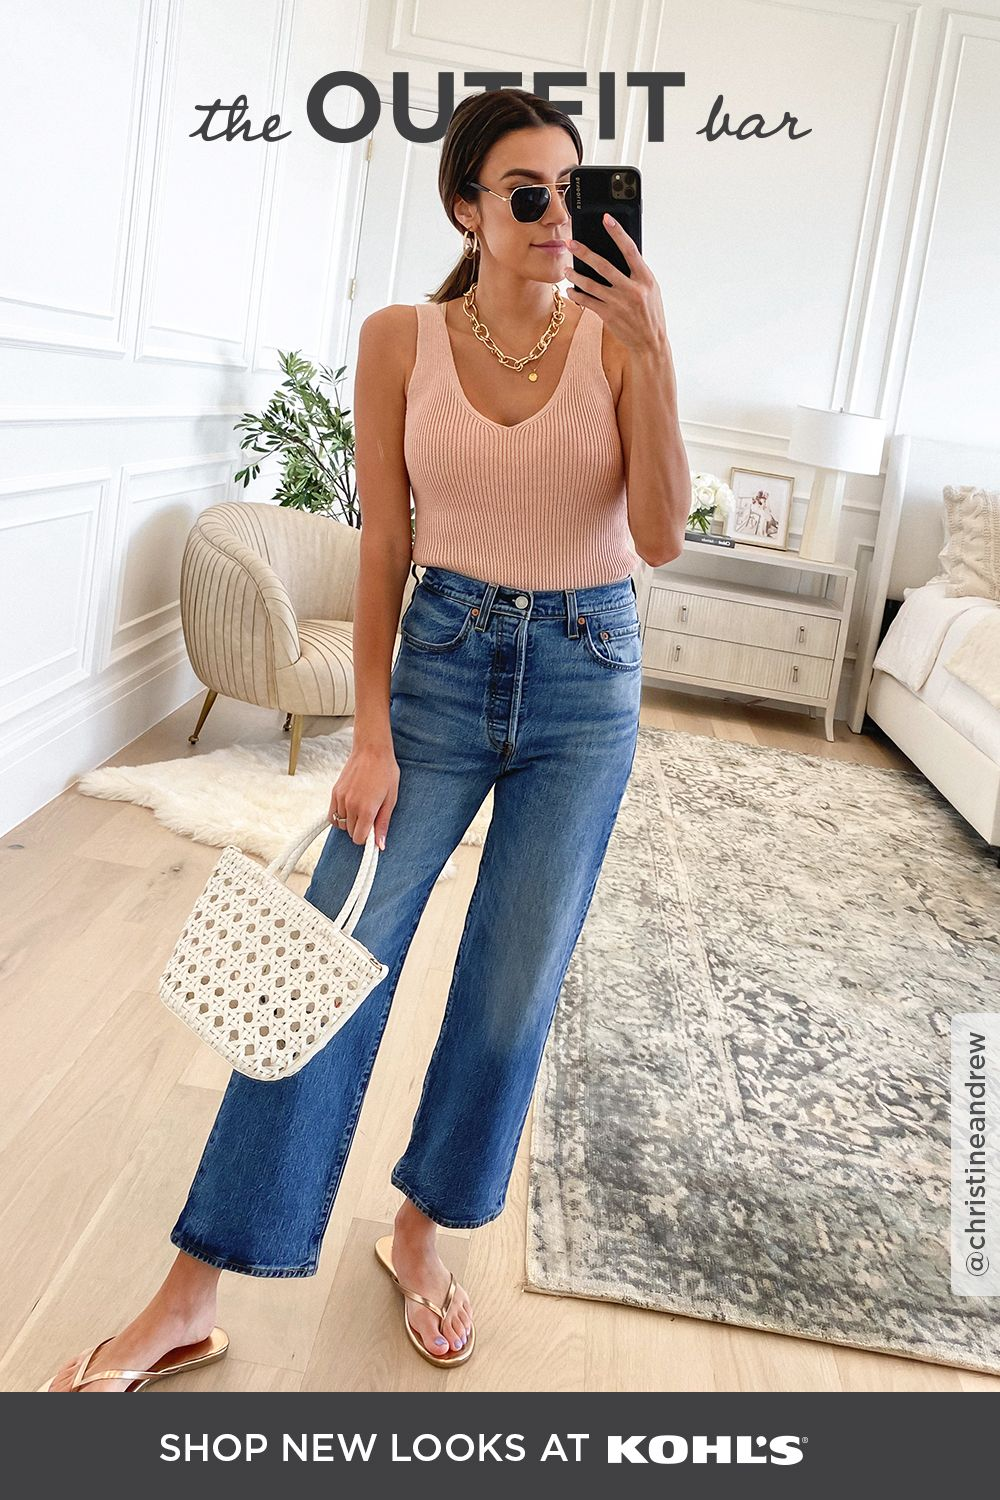 Jeans Outfit For Women Casual Wear Red Cardigan Sweater Plus Size Stores White Shorts Outfit Green Fur Coat Daily Casual Wear